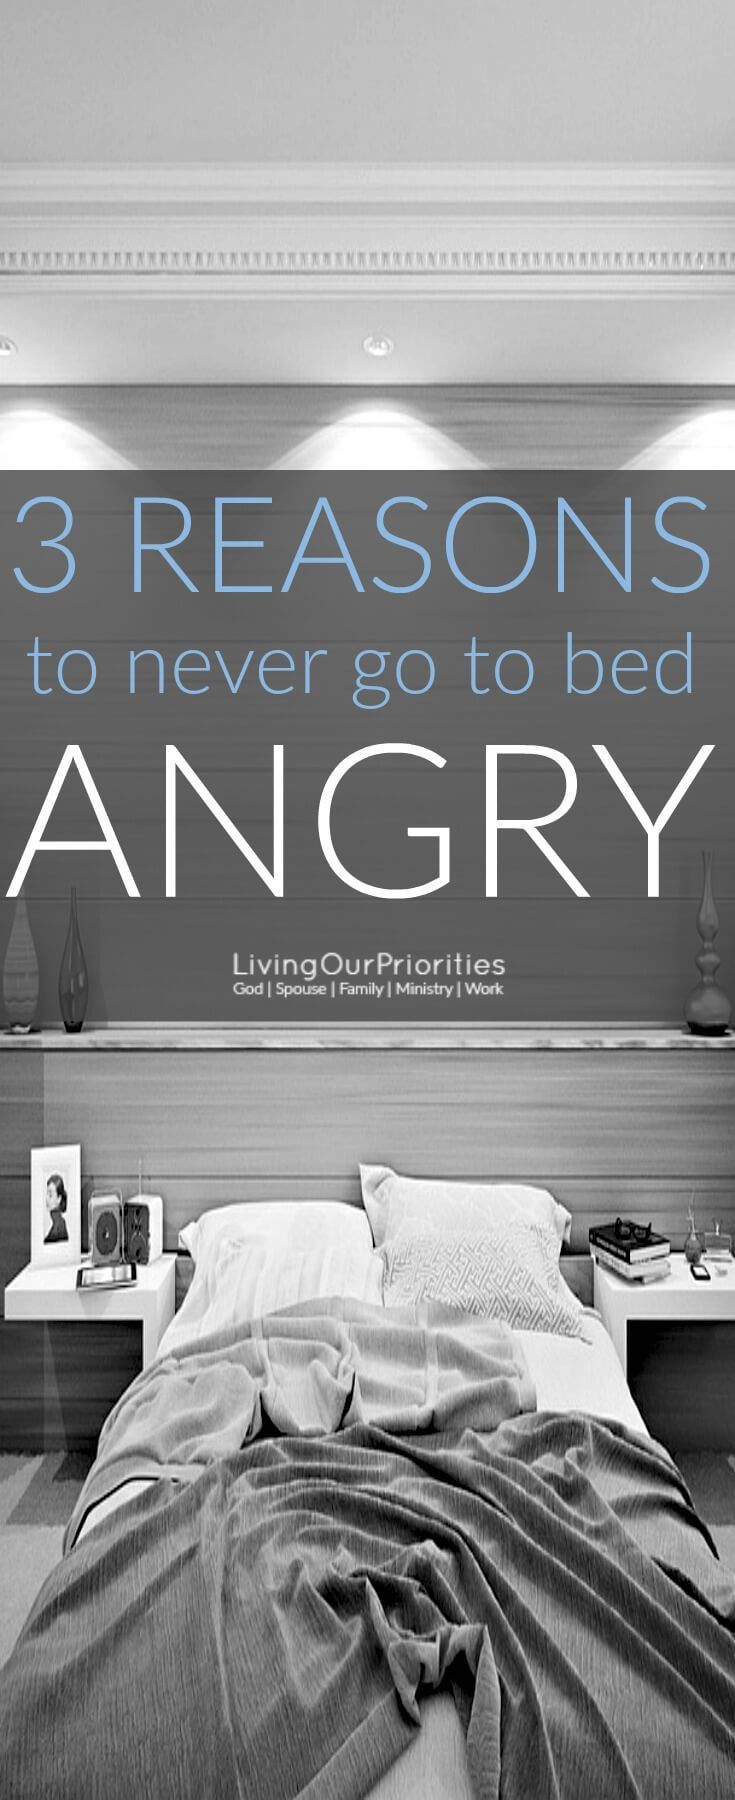 Going to bed angry can have a negative effect on our sleep both in the natural and spiritual. Read more to find out what God says about going to bed angry.